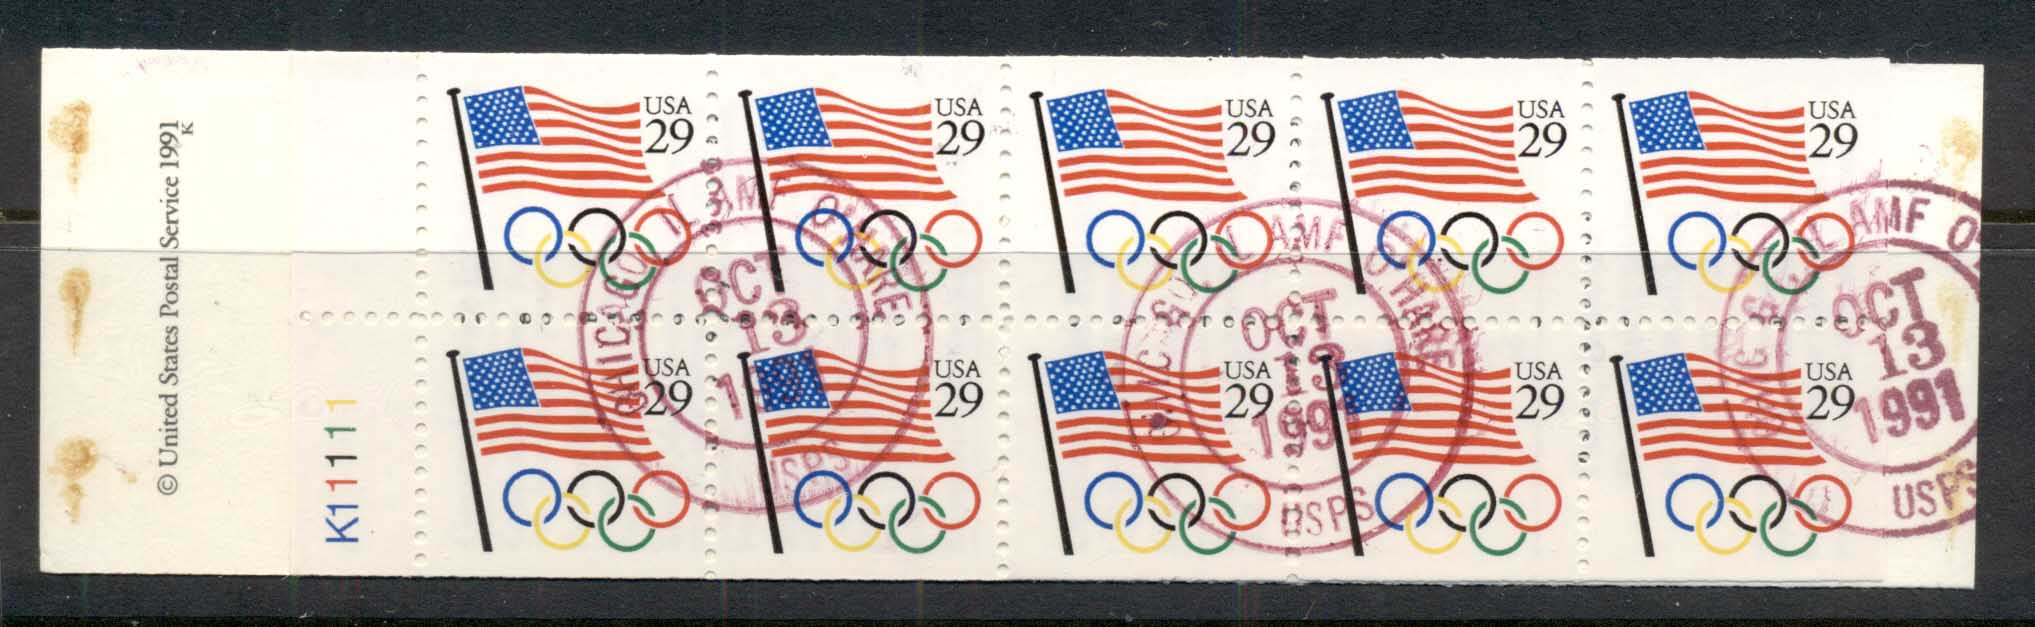 USA 1991 Sc#2528 Flag, Olympic Rings booklet pane FU